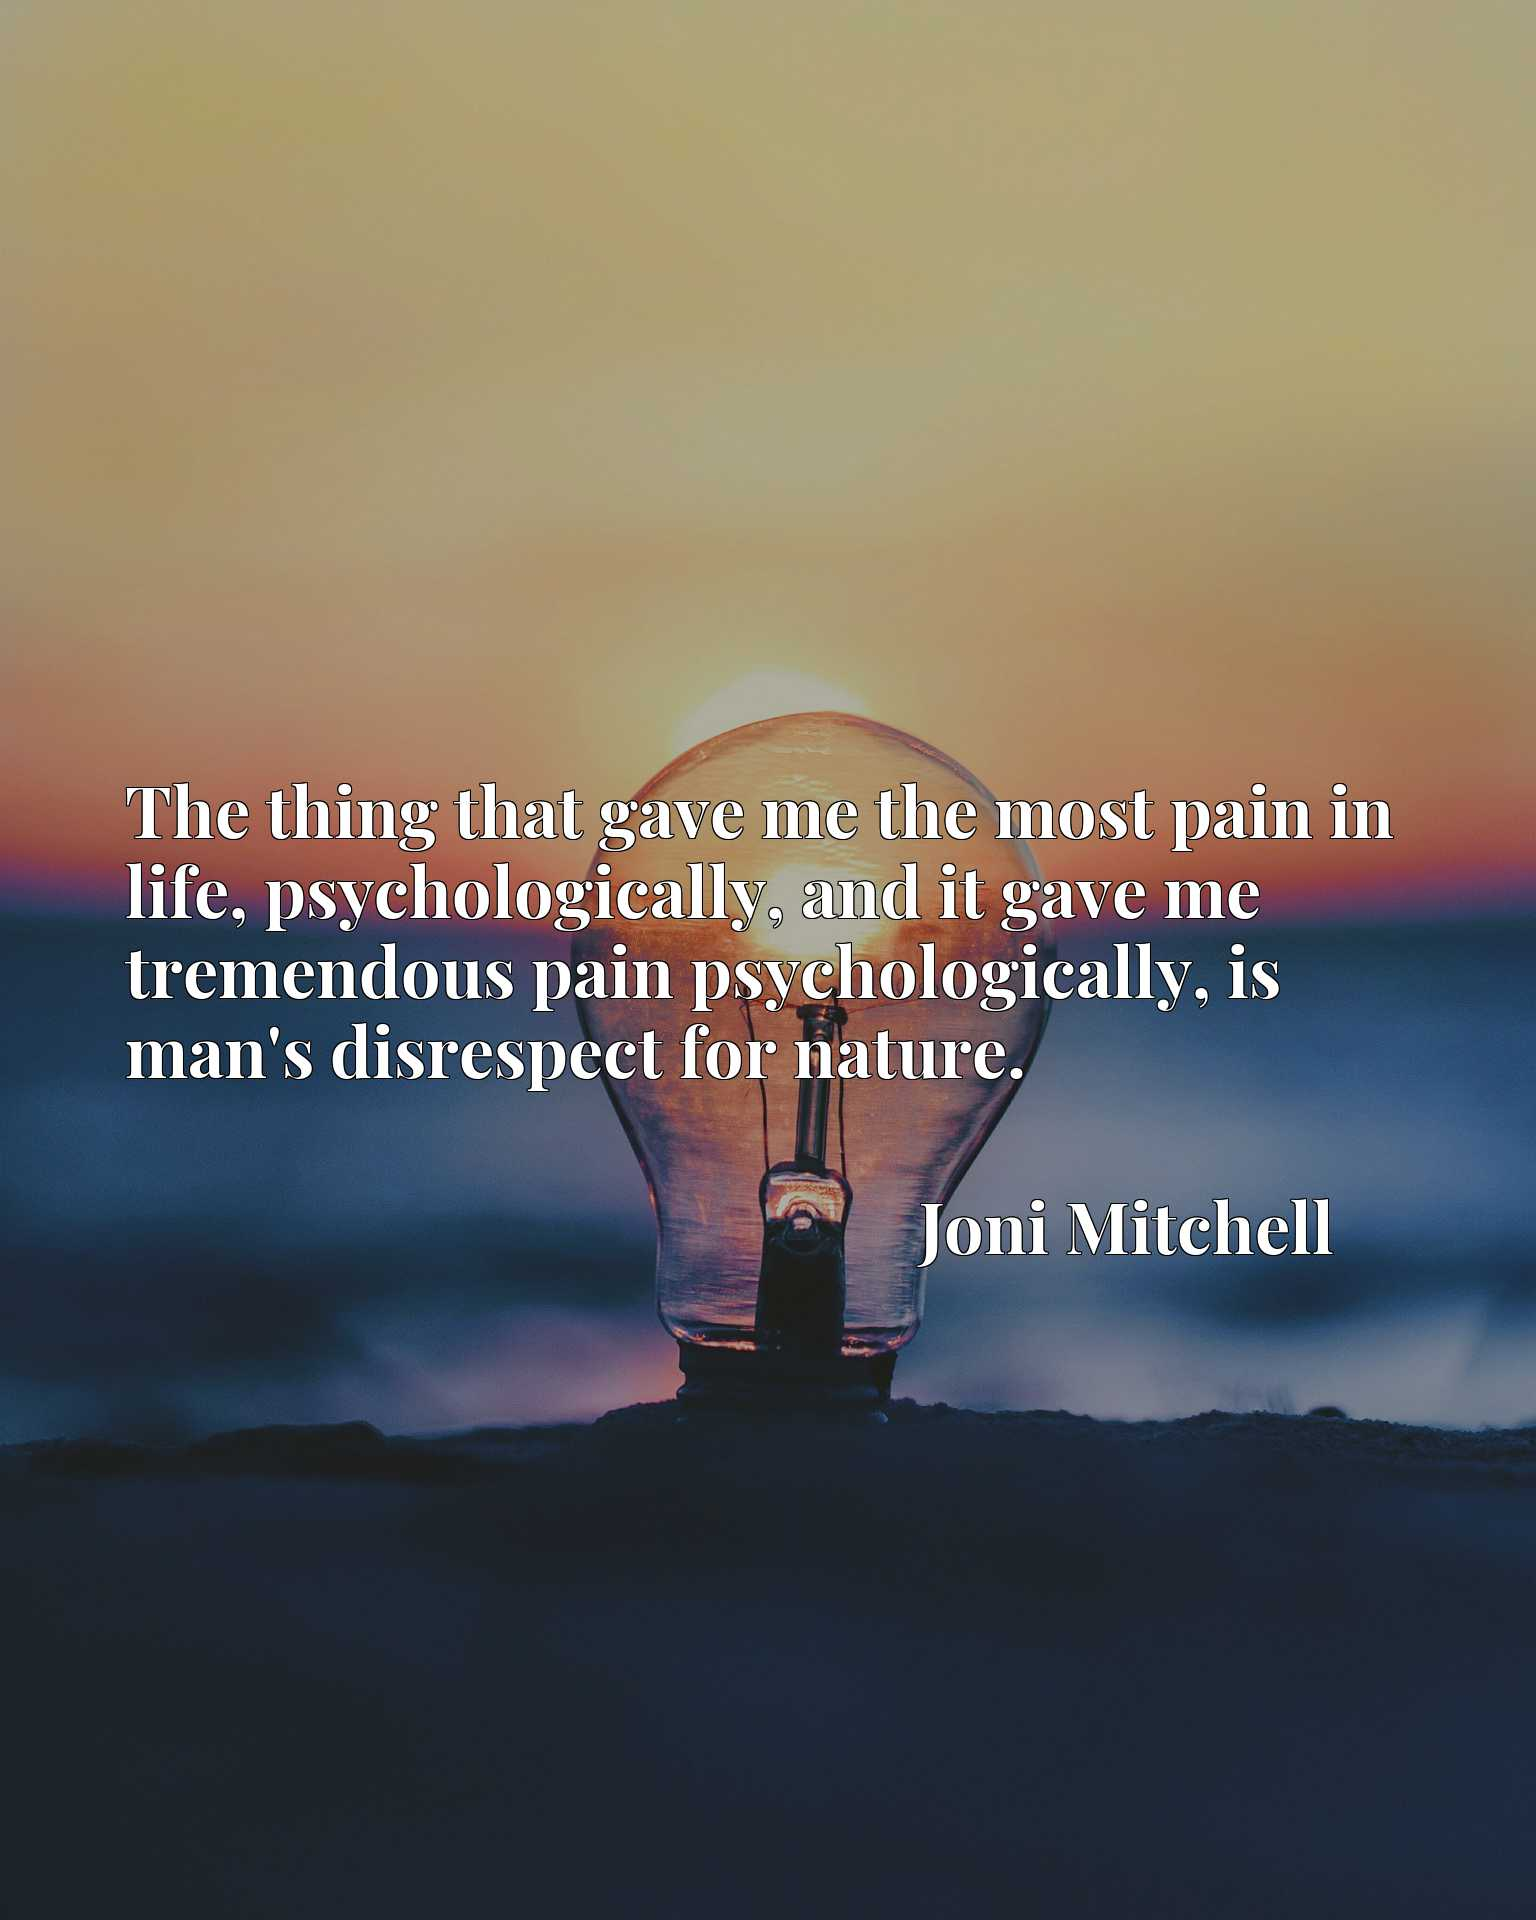 Quote Picture :The thing that gave me the most pain in life, psychologically, and it gave me tremendous pain psychologically, is man's disrespect for nature.